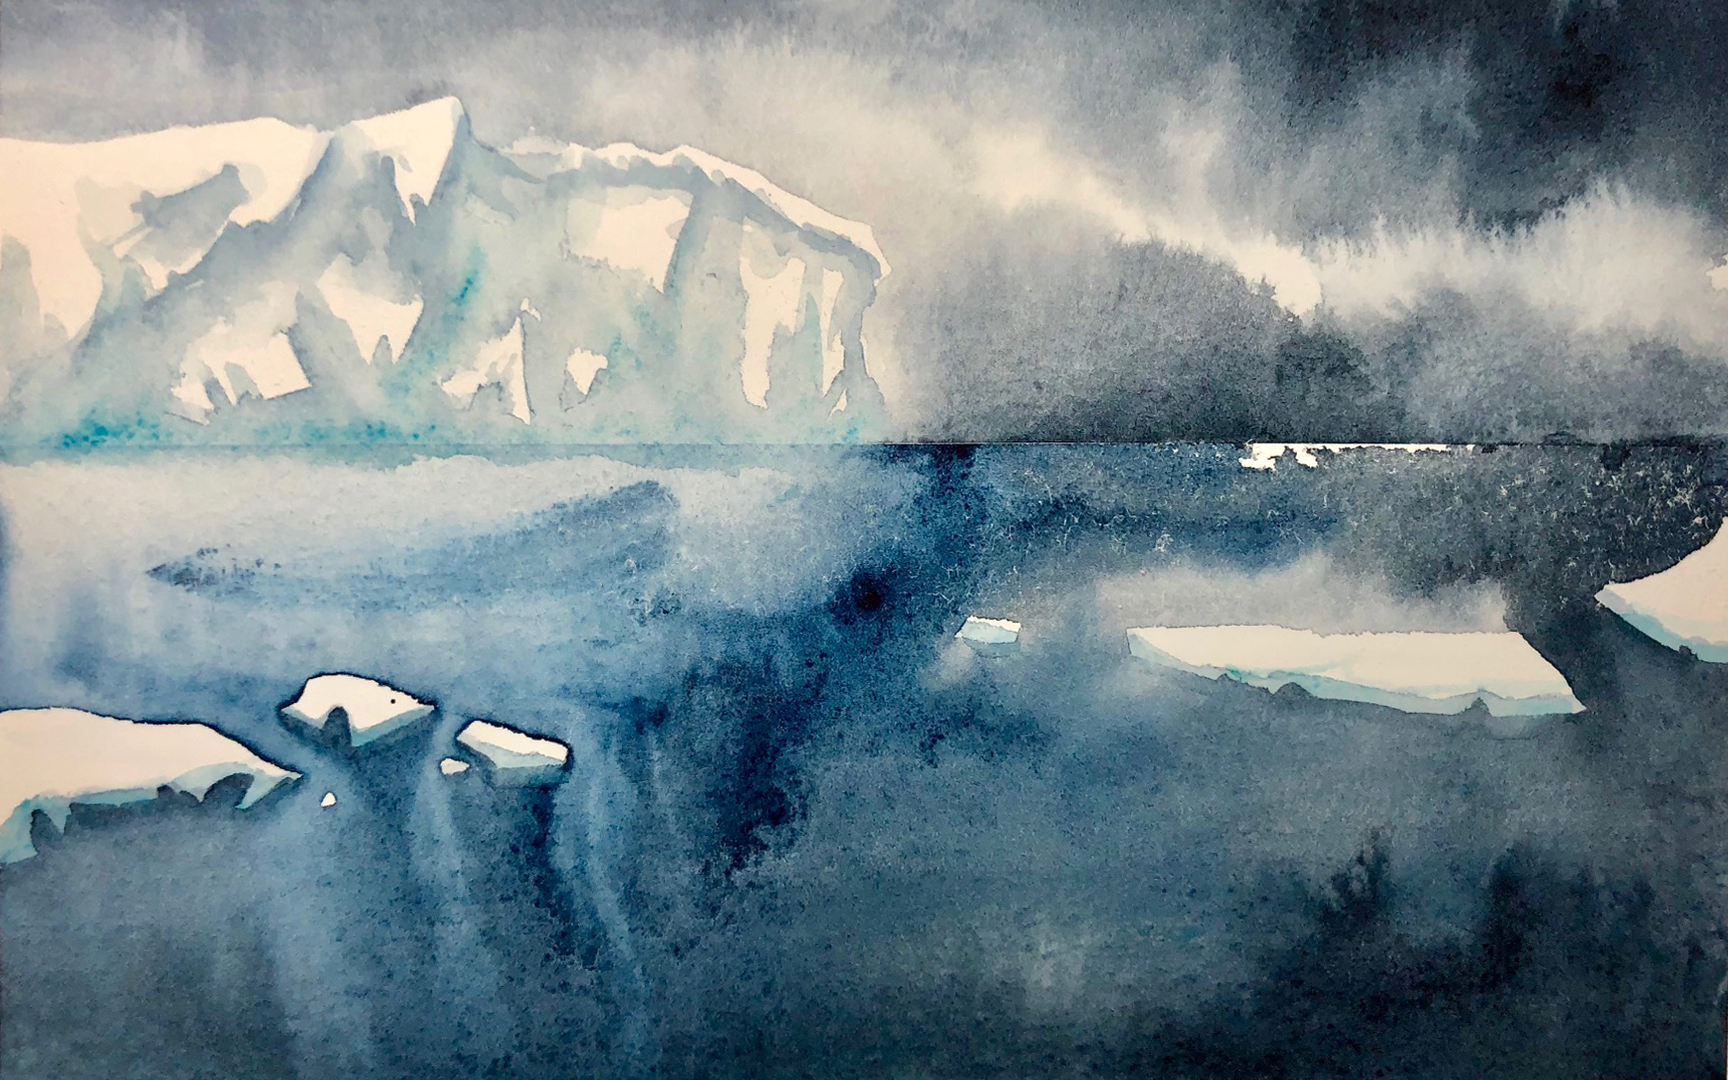 Ice Shelf, watercolor                                                                      Copyright © Marlo Garnsworthy